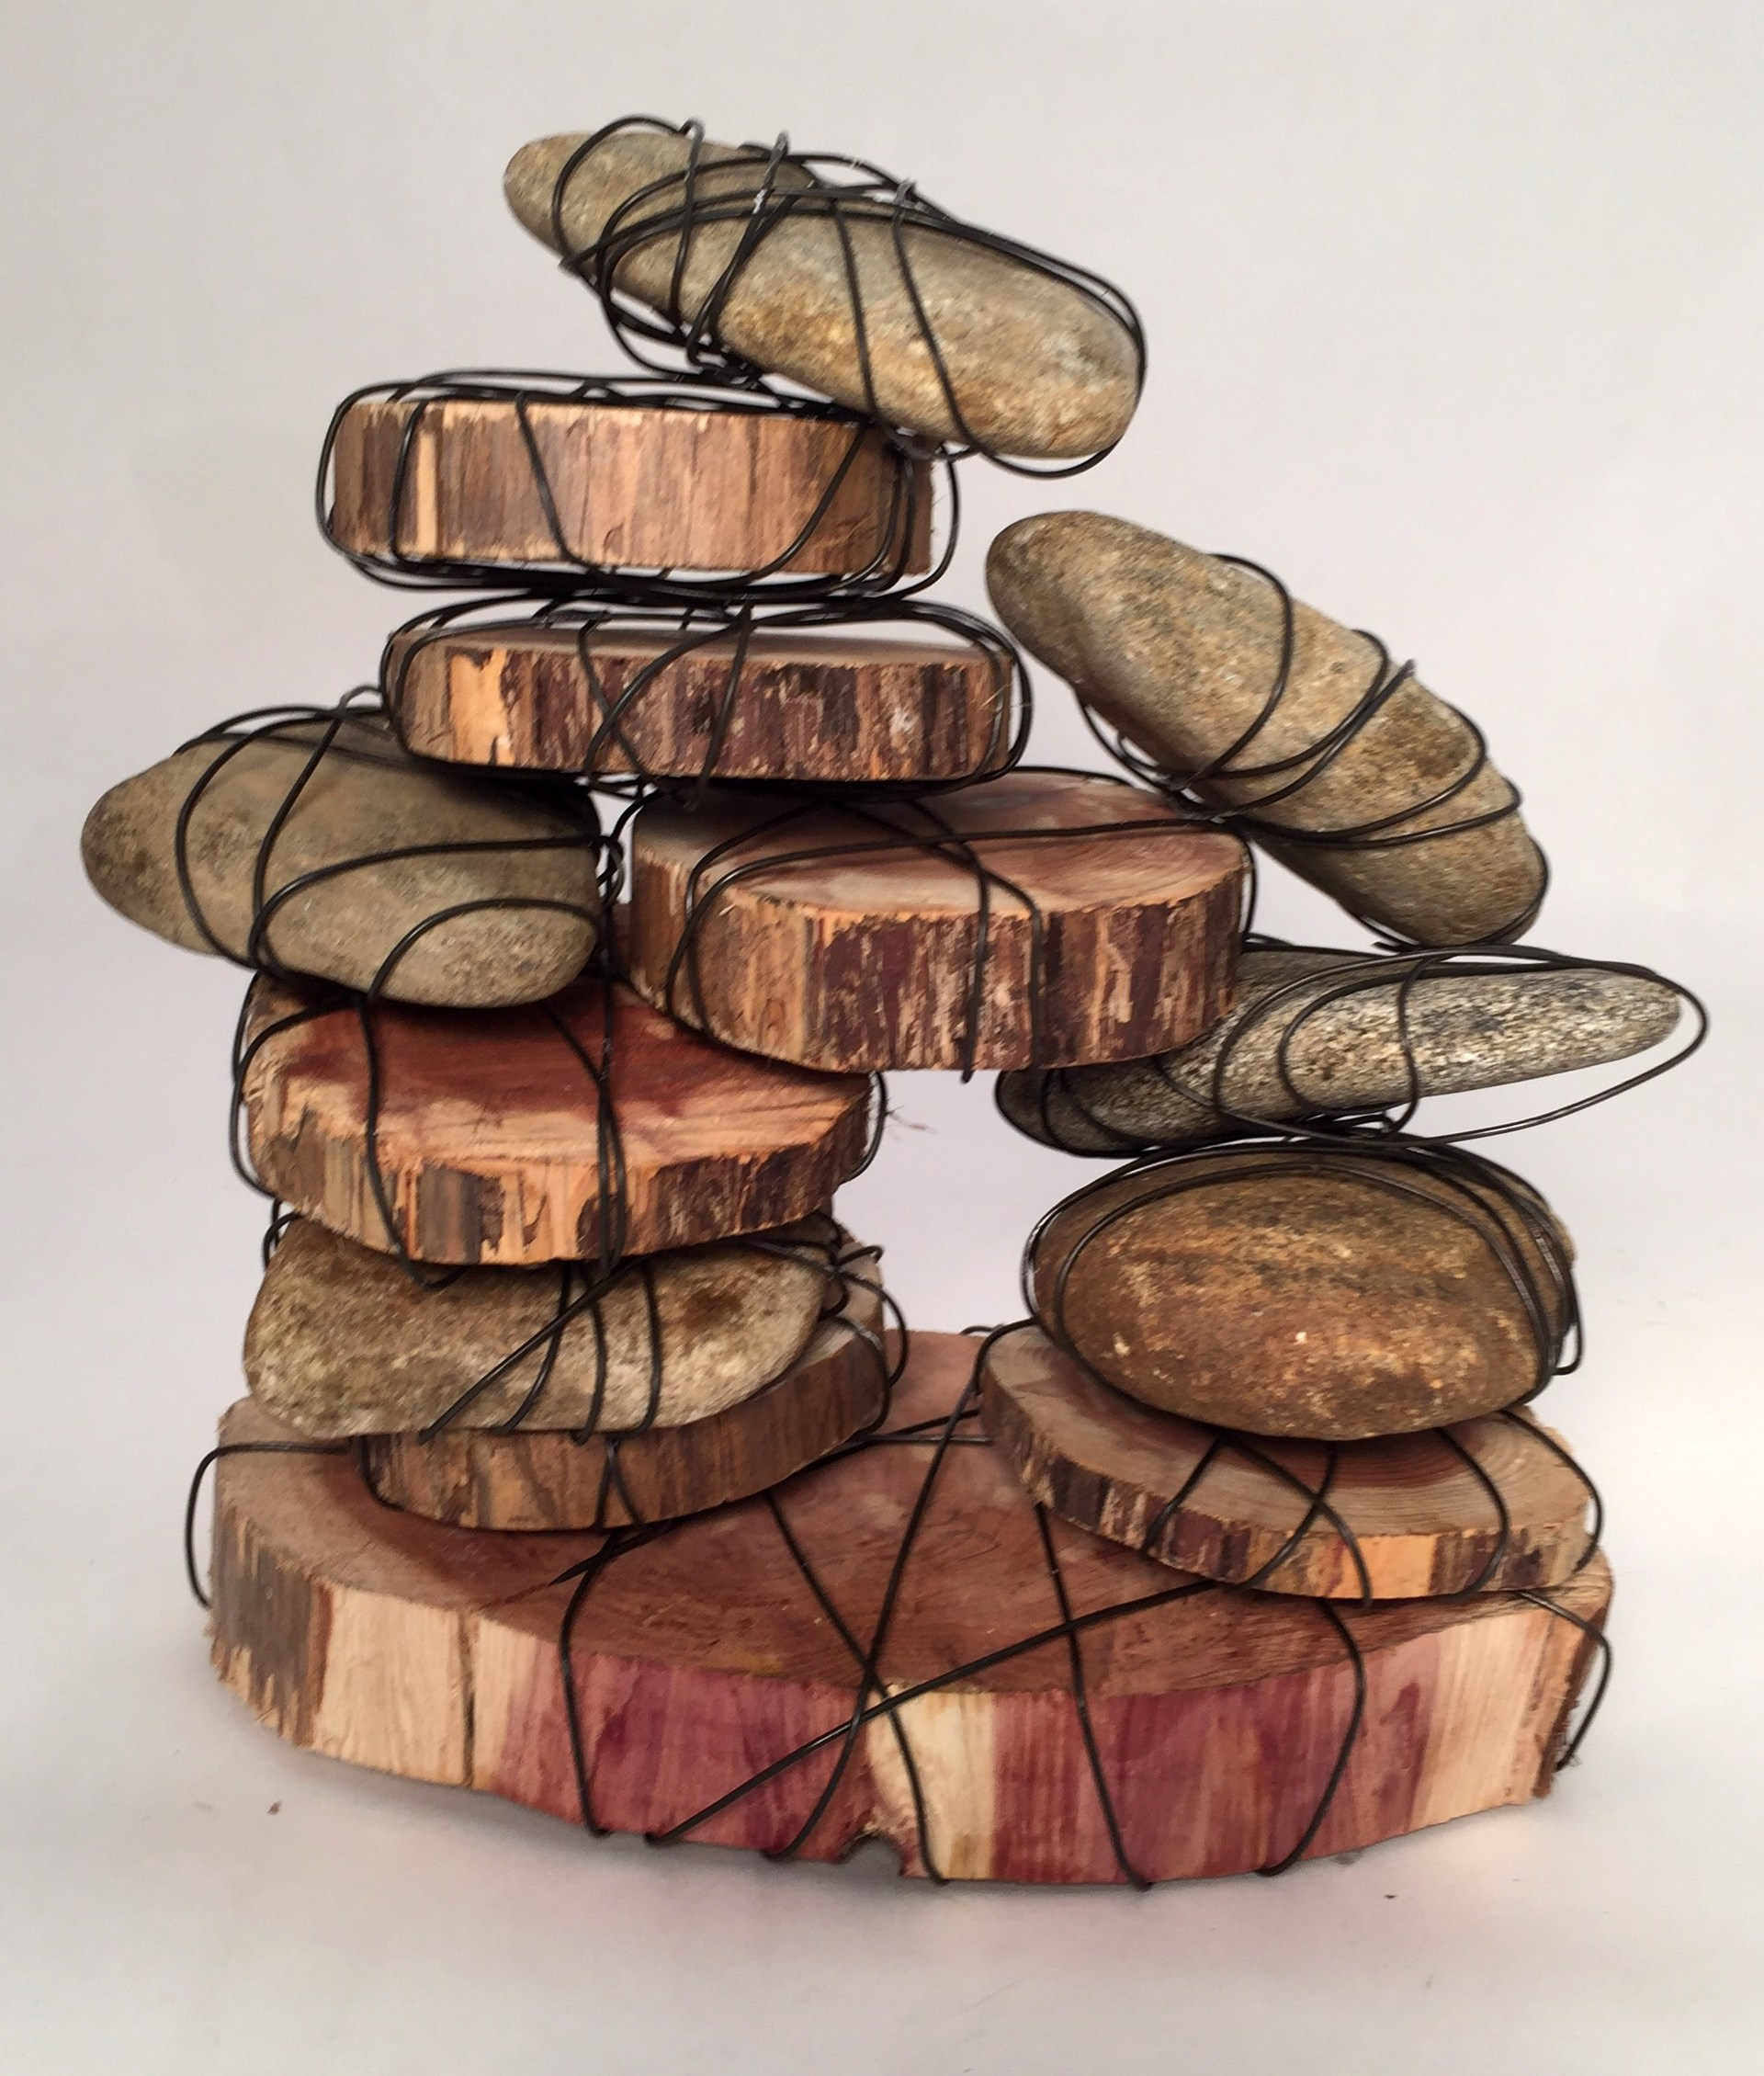 Sculpture of rocks bound with wire